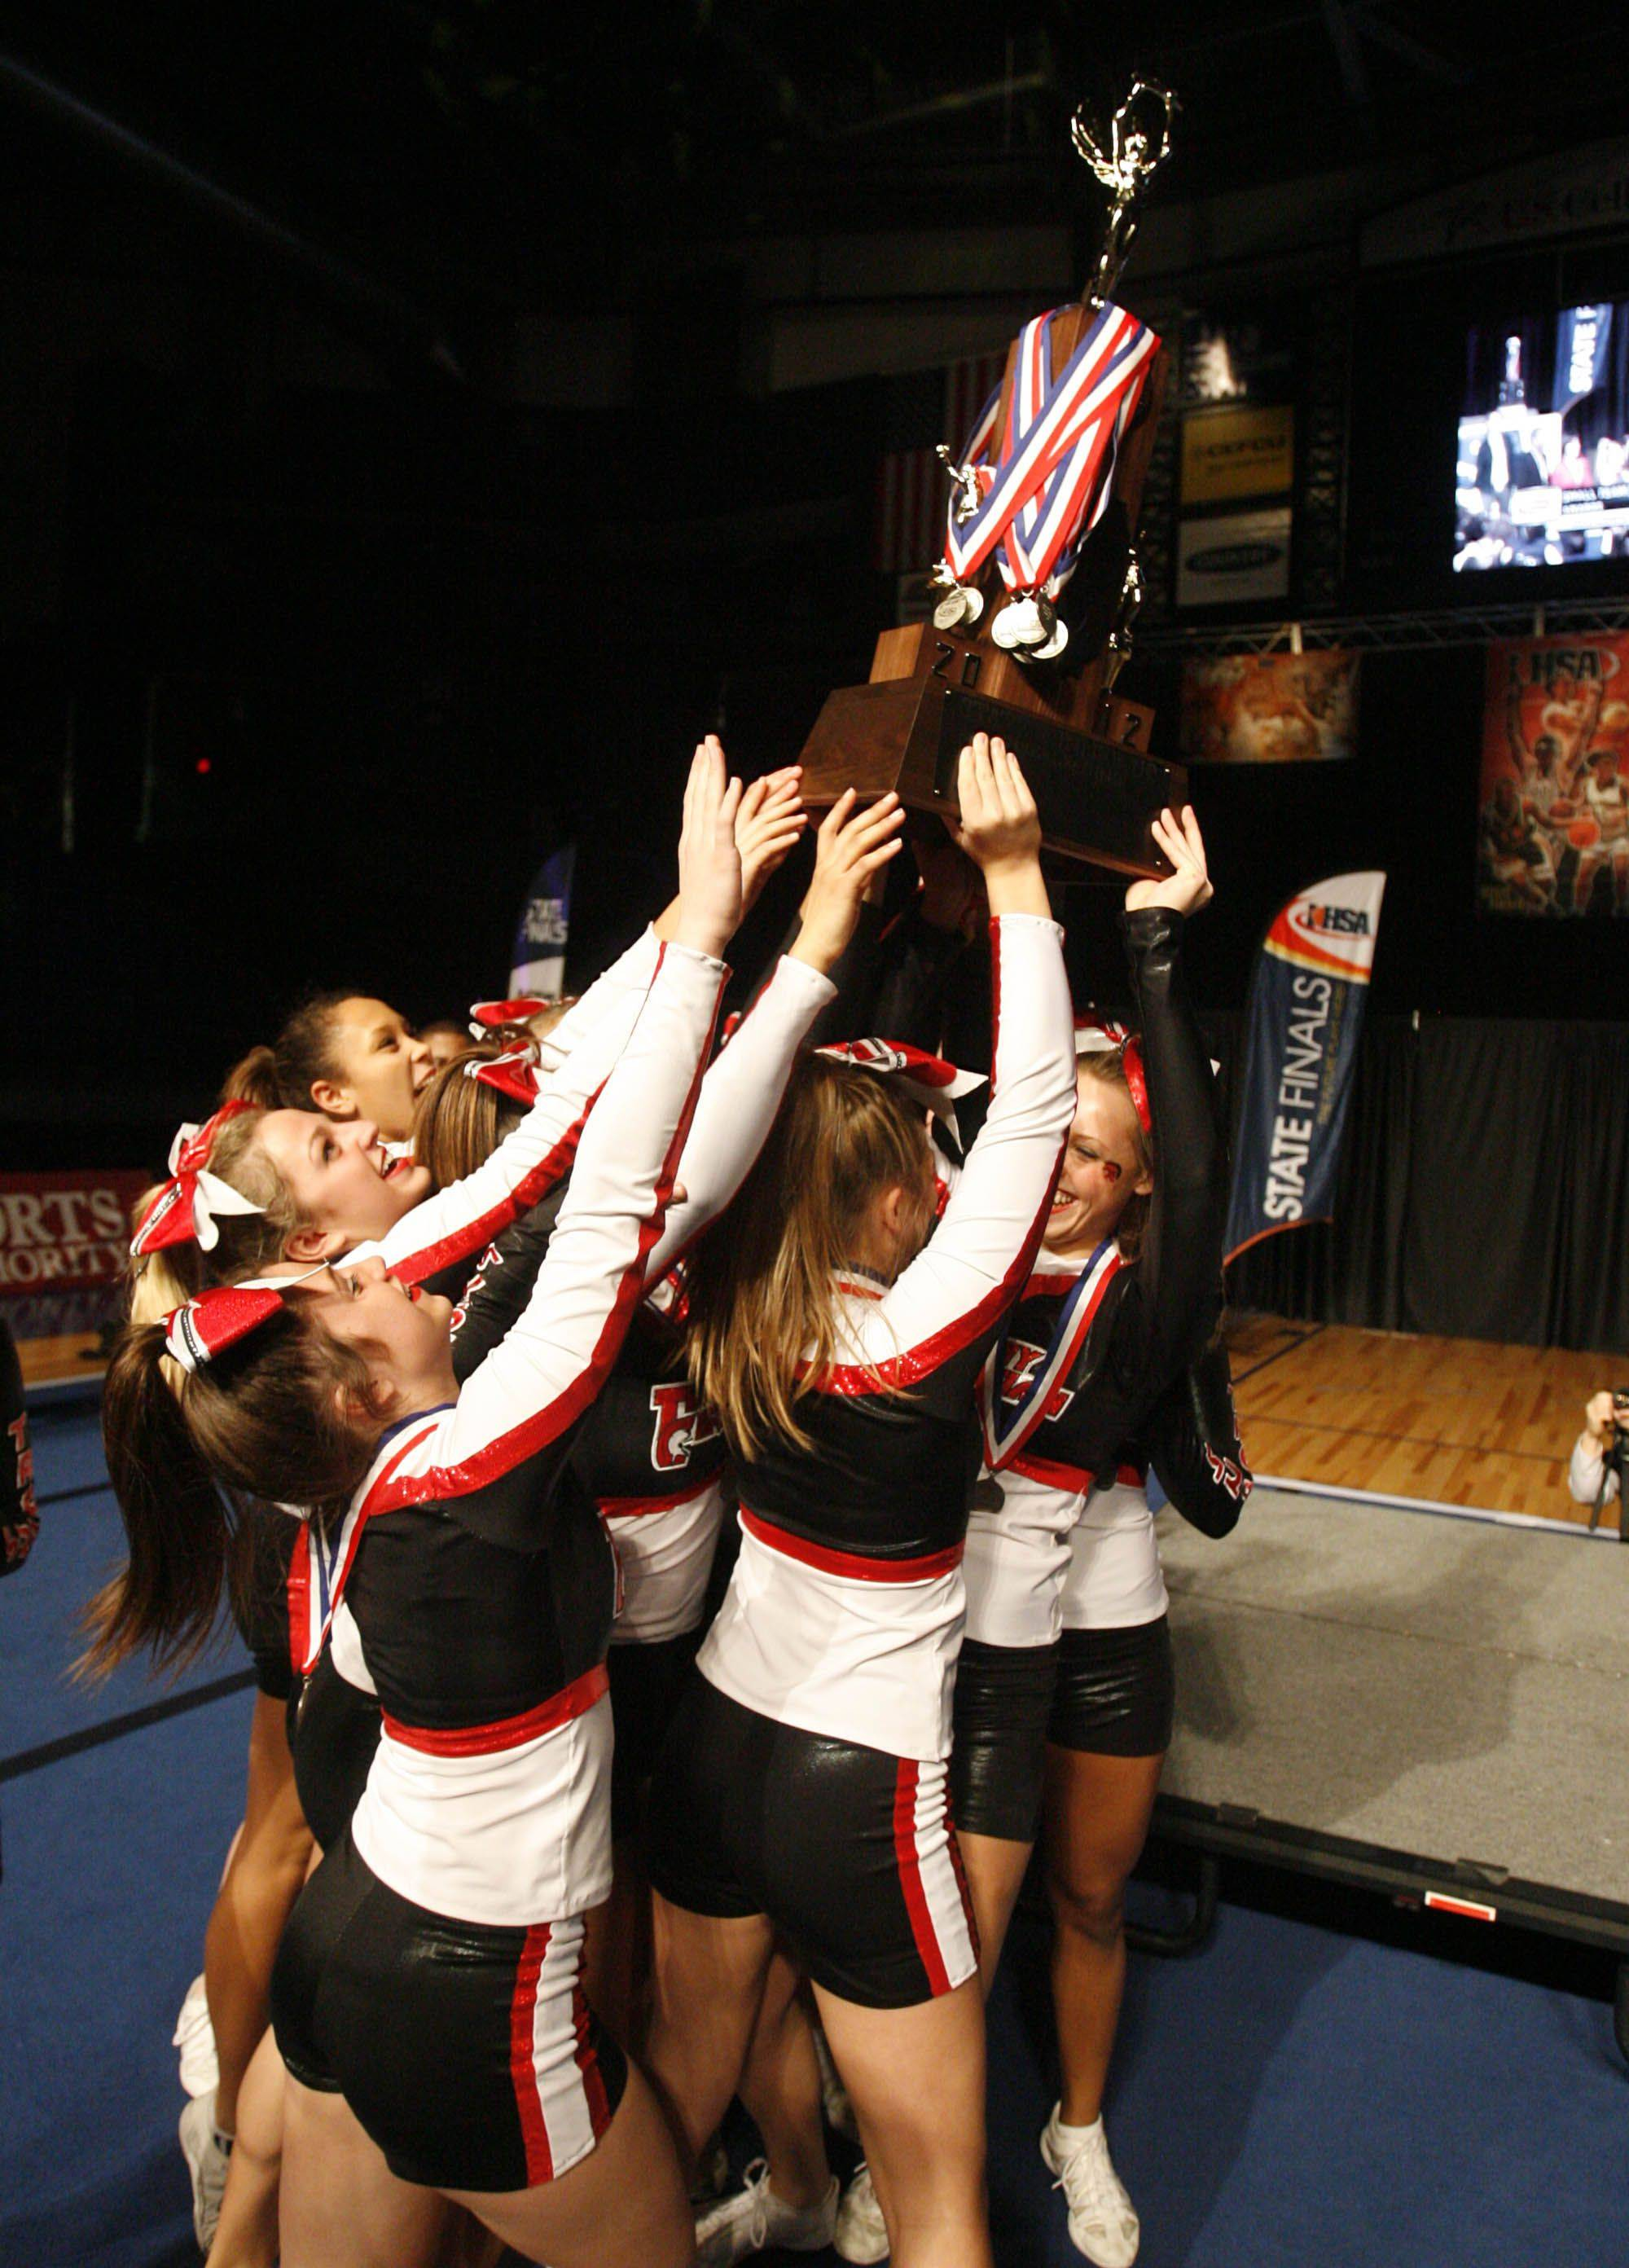 Timothy Christian raises the second place trophy at IHSA cheerleading state finals for the small school category at U.S. Cellular Coliseum in Bloomington on Saturday.